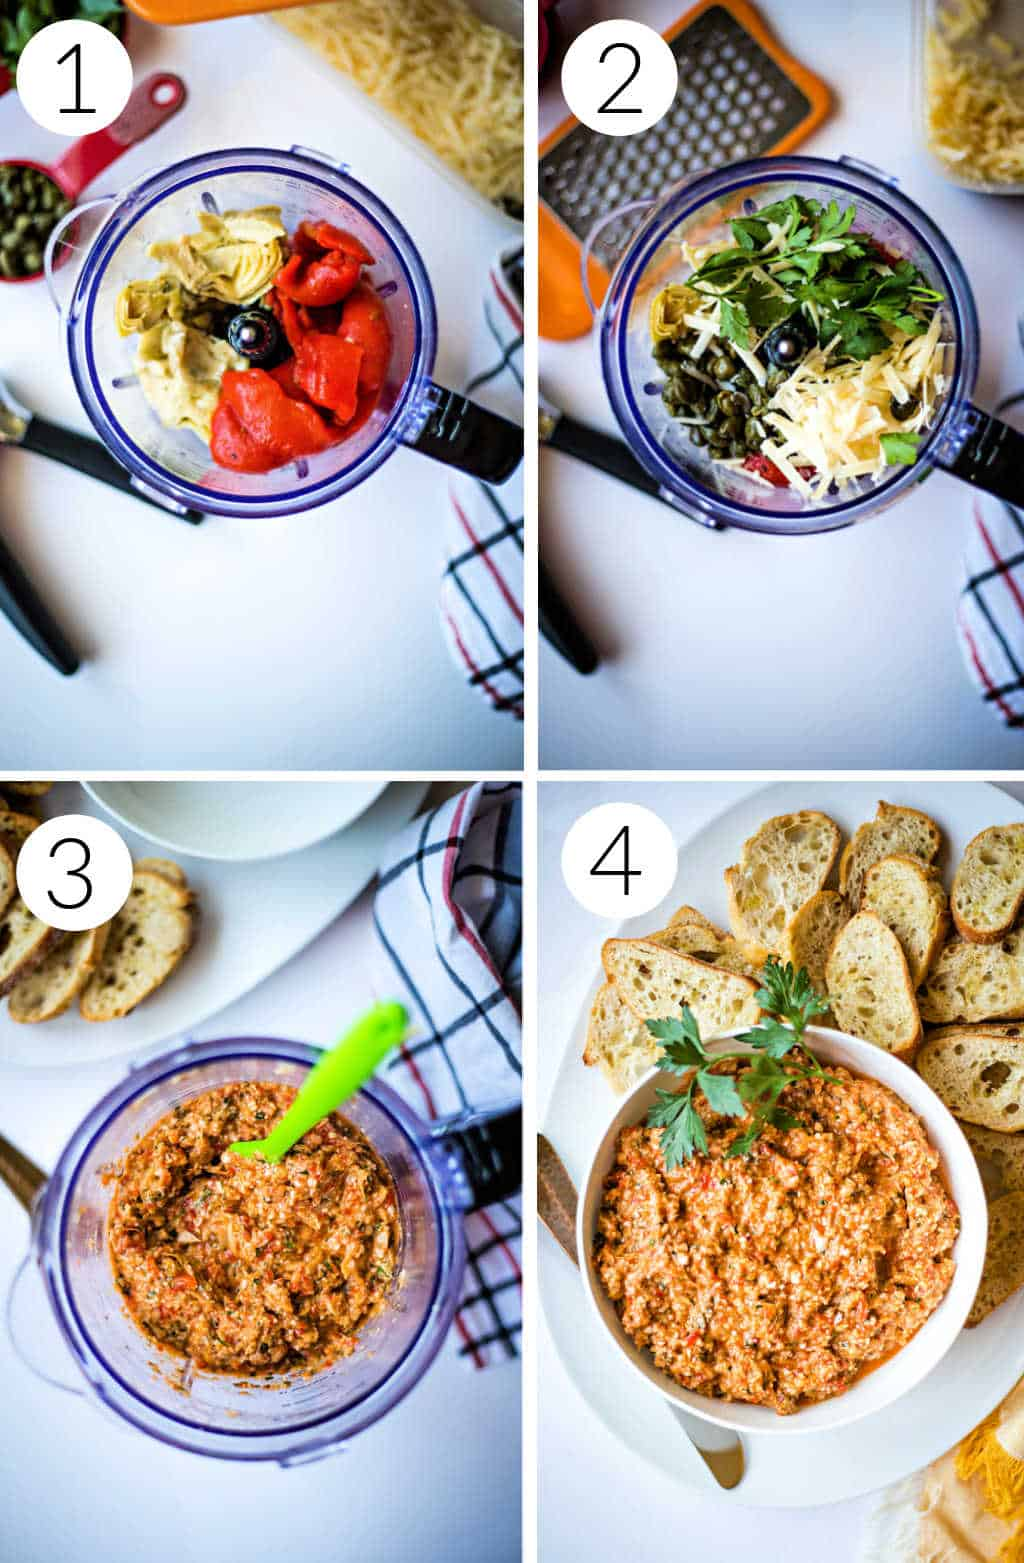 process for making roasted red pepper tapenade